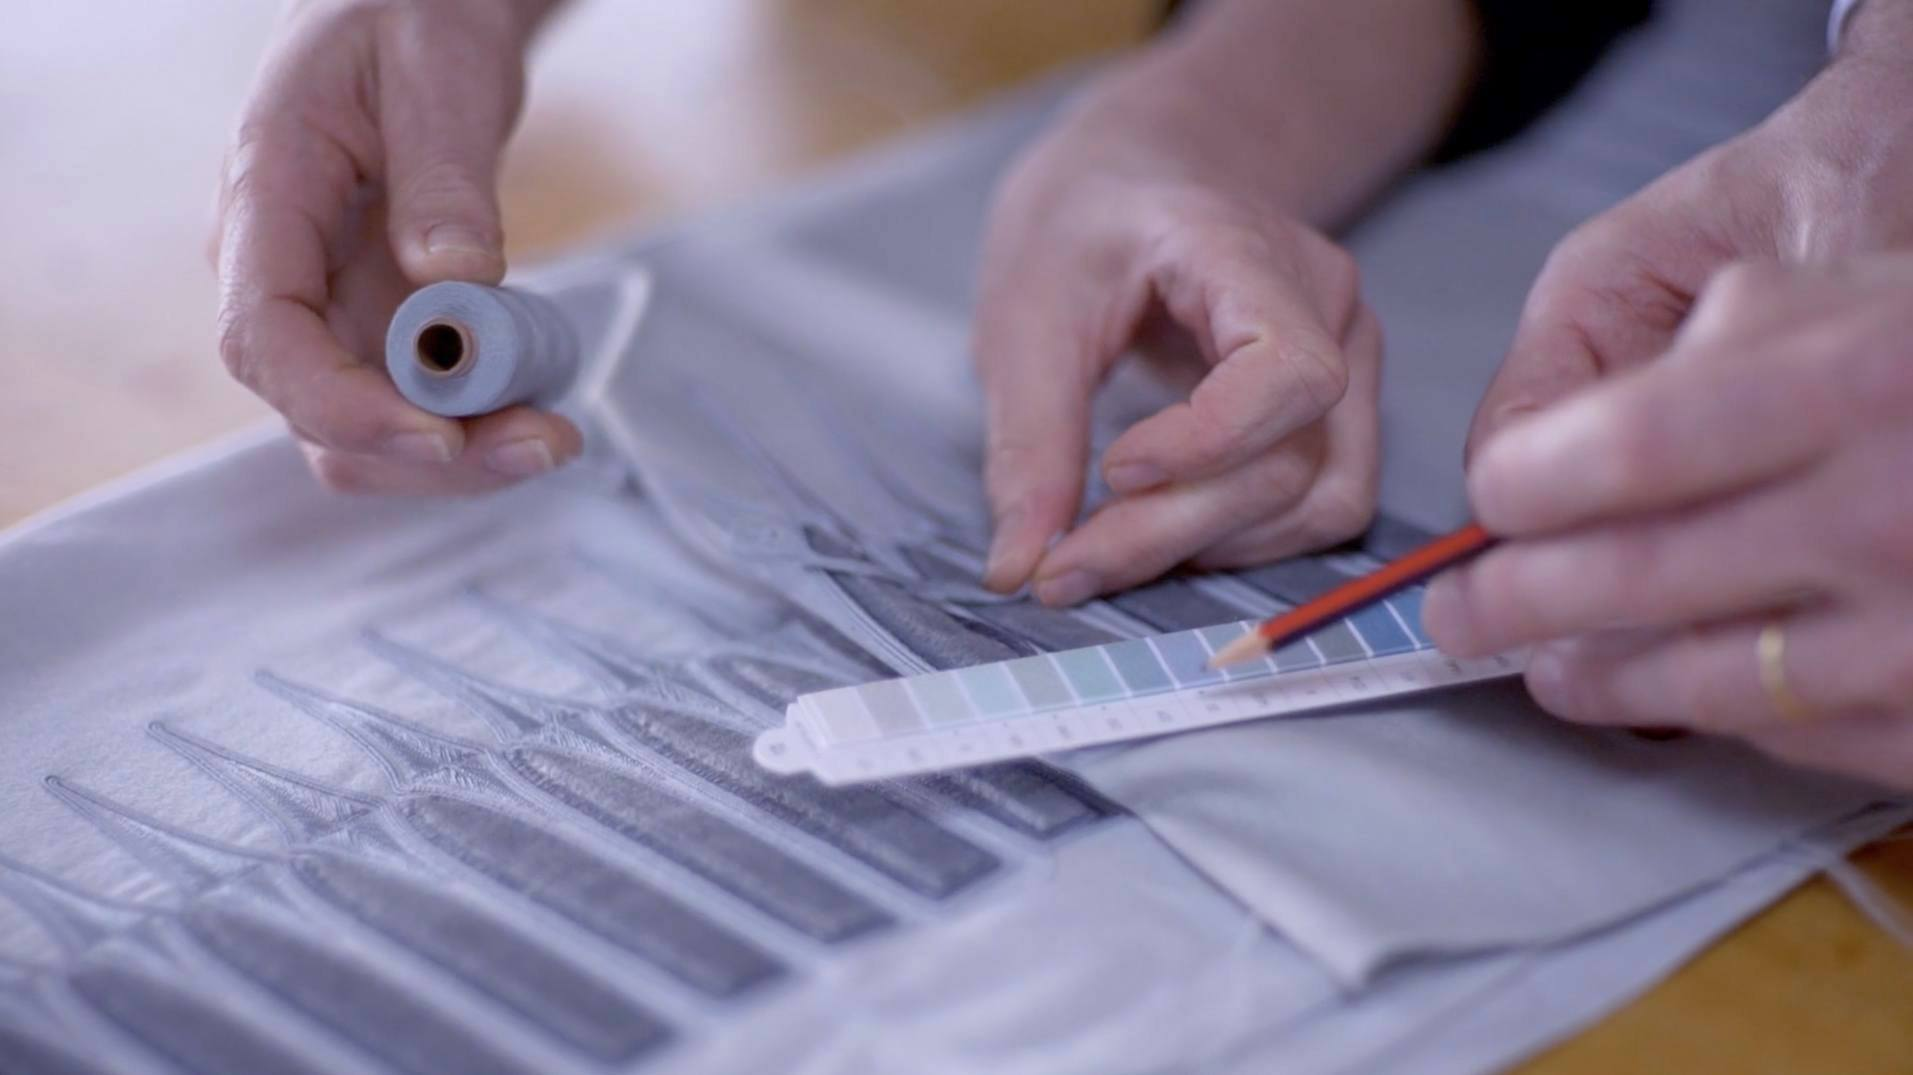 The London Curtain Company : : Atelier Couture : Fabrication